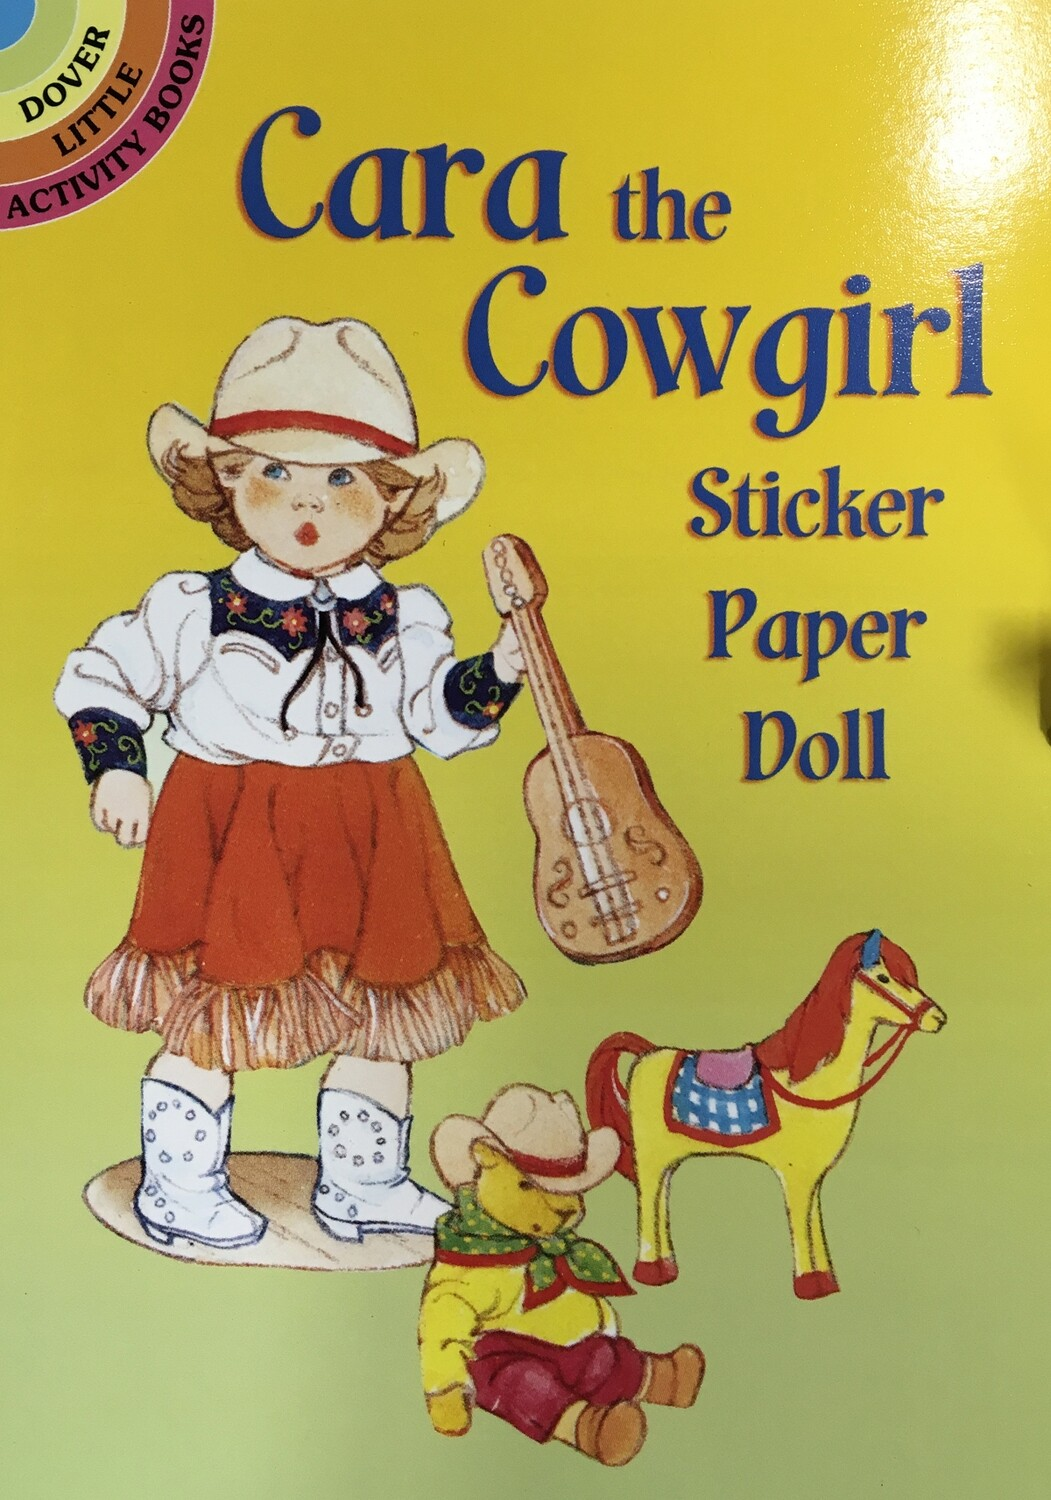 Cara the Cowgirl sticker Paper Doll